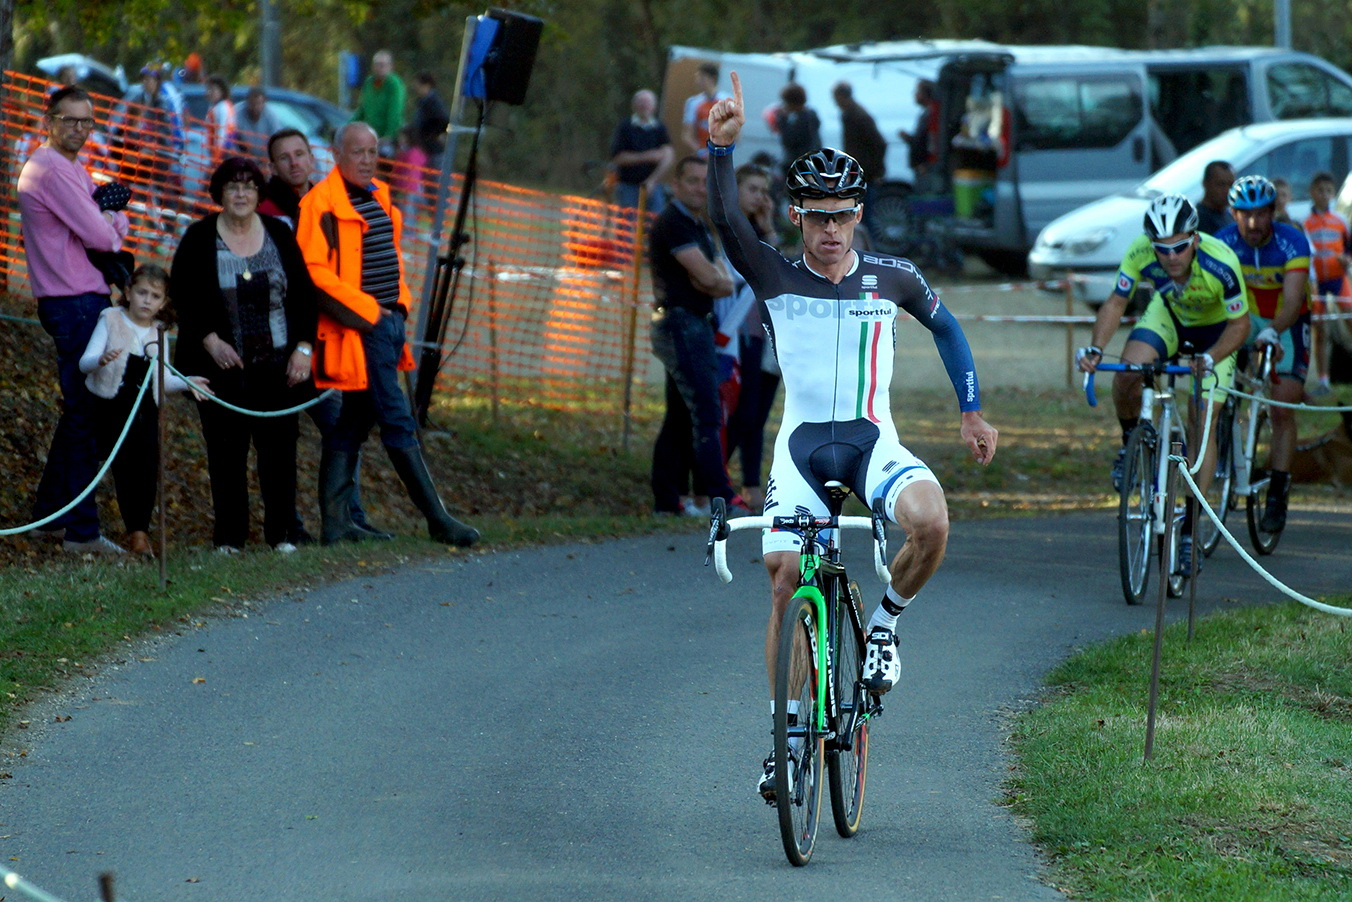 N°0055 - Cyclo-cross de Saint Angeau le 1er Novembre 2016